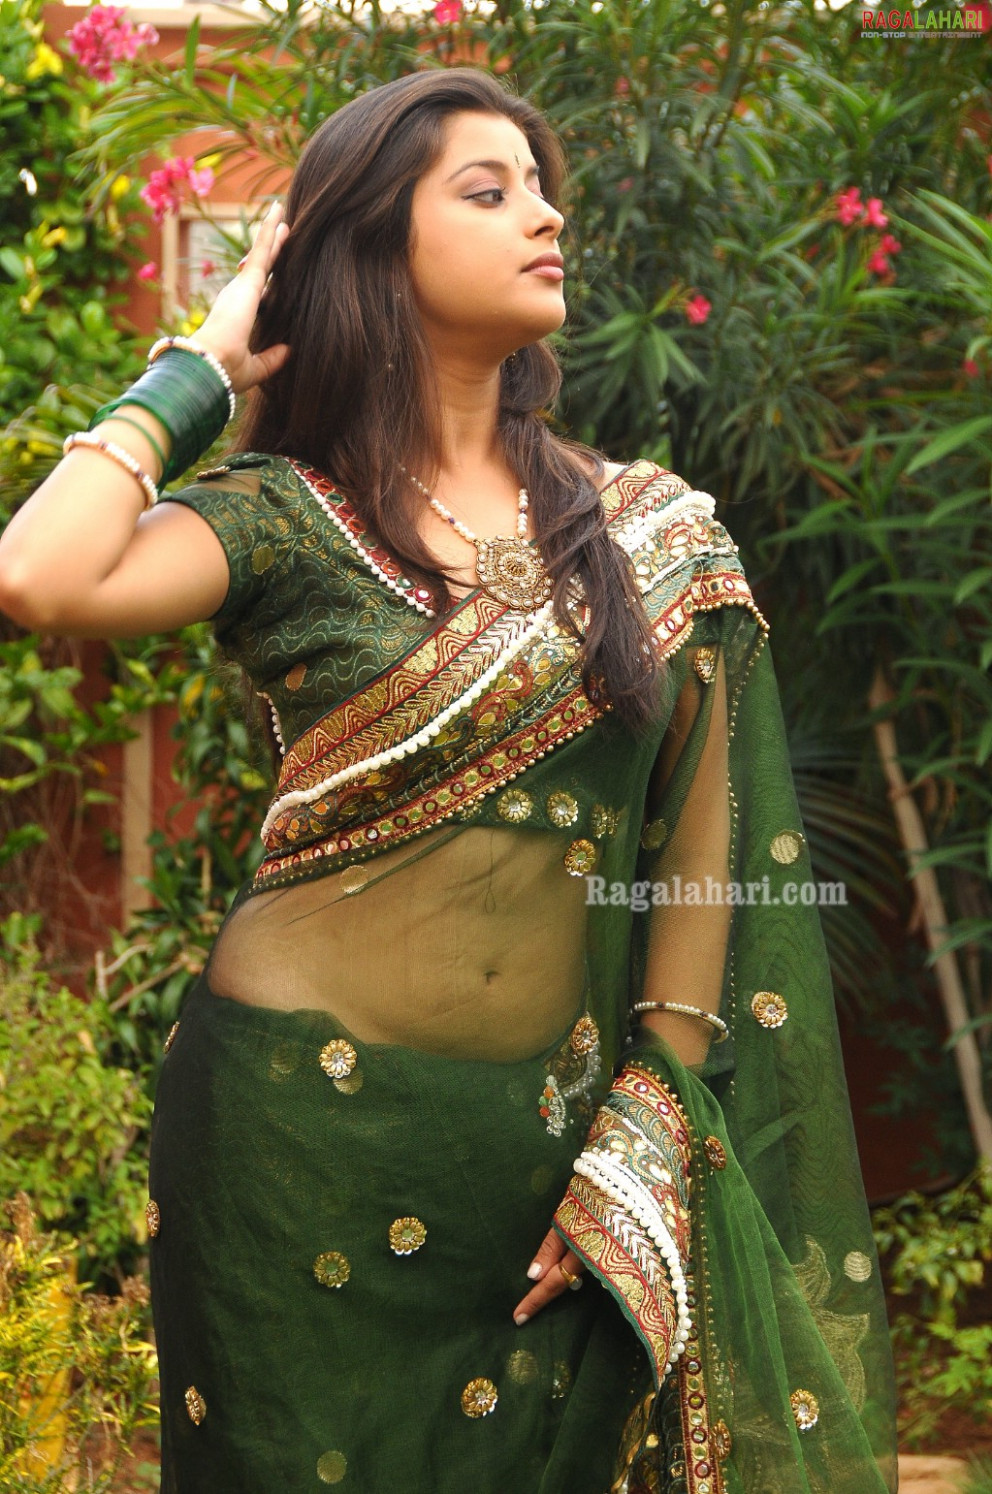 INDIAN ACTRESS: Madhurima green transparent saree navel